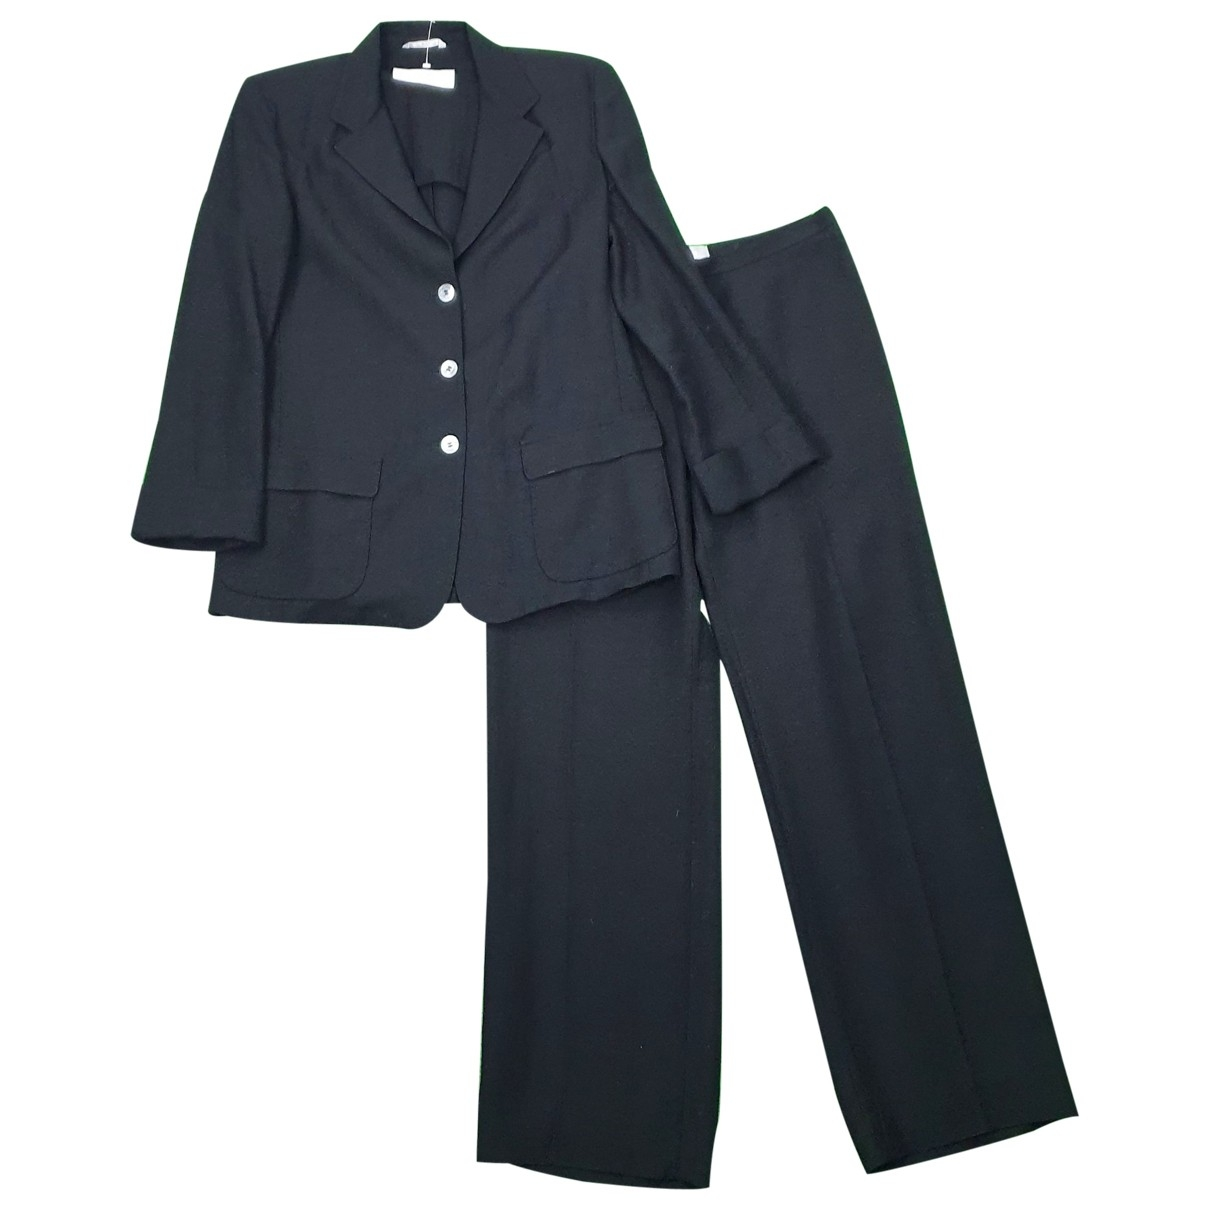 Max Mara \N Black Linen jacket for Women 42 IT